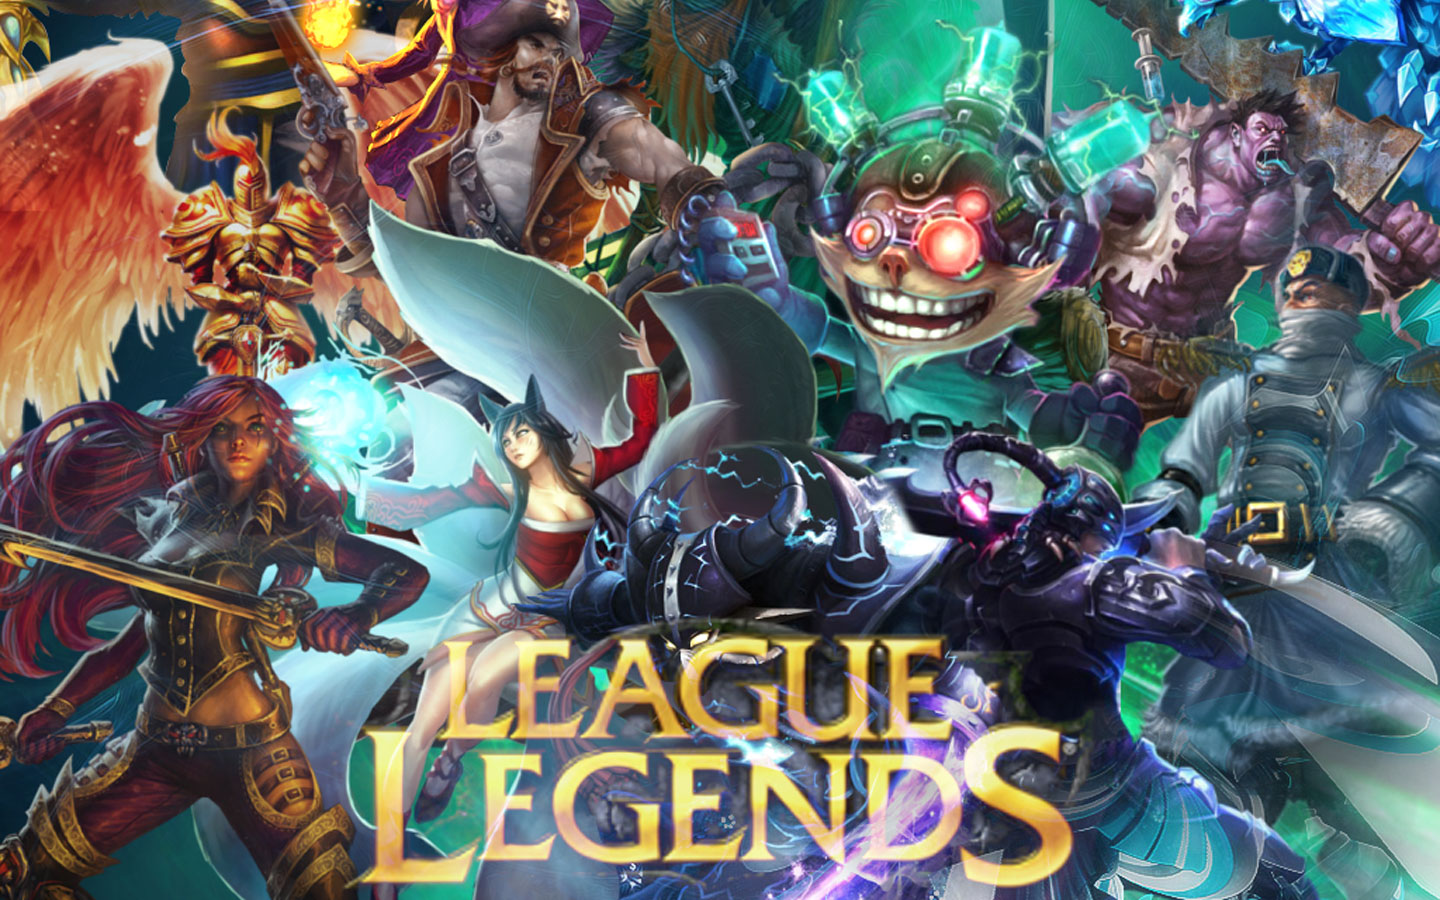 League of Legends zenés videók